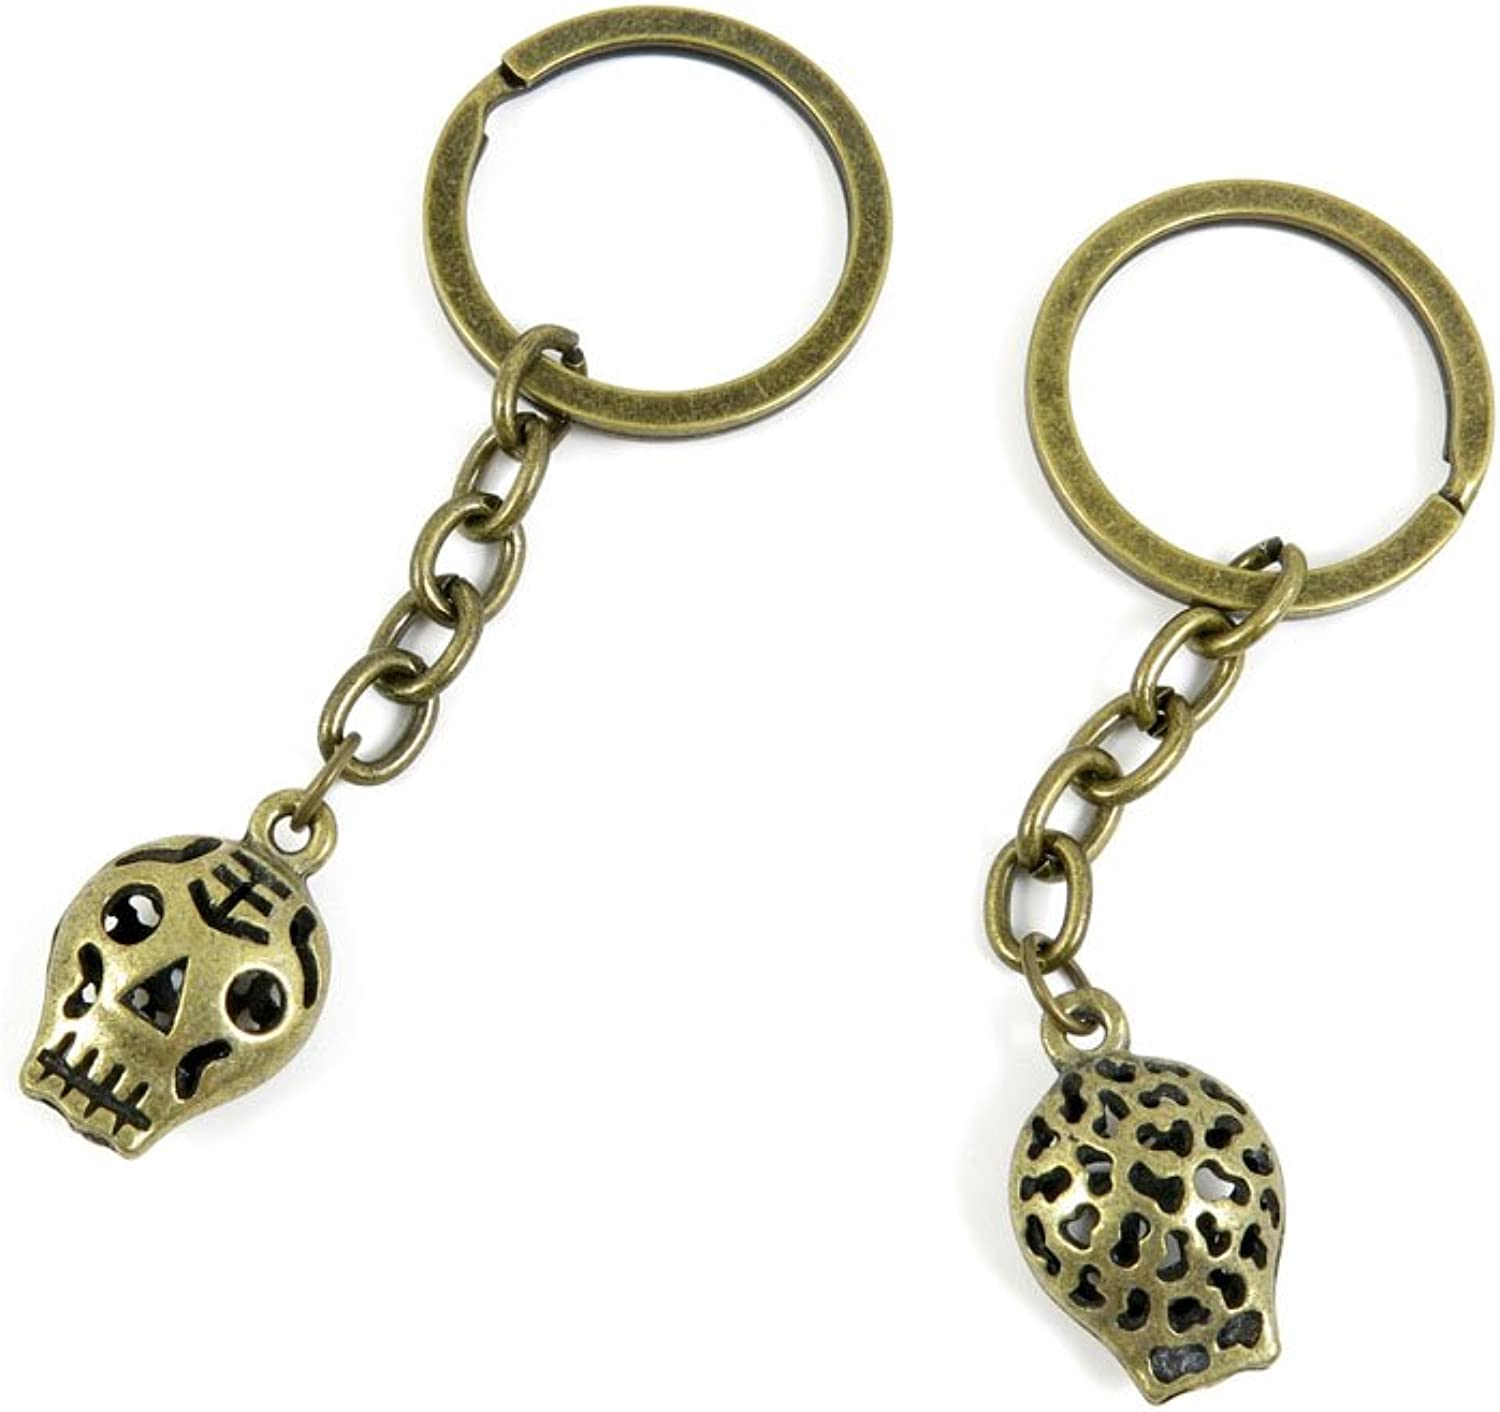 100 PCS Keyrings Keychains Key Ring Chains Tags Jewelry Findings Clasps Buckles Supplies W2VV4 Hollow Skull